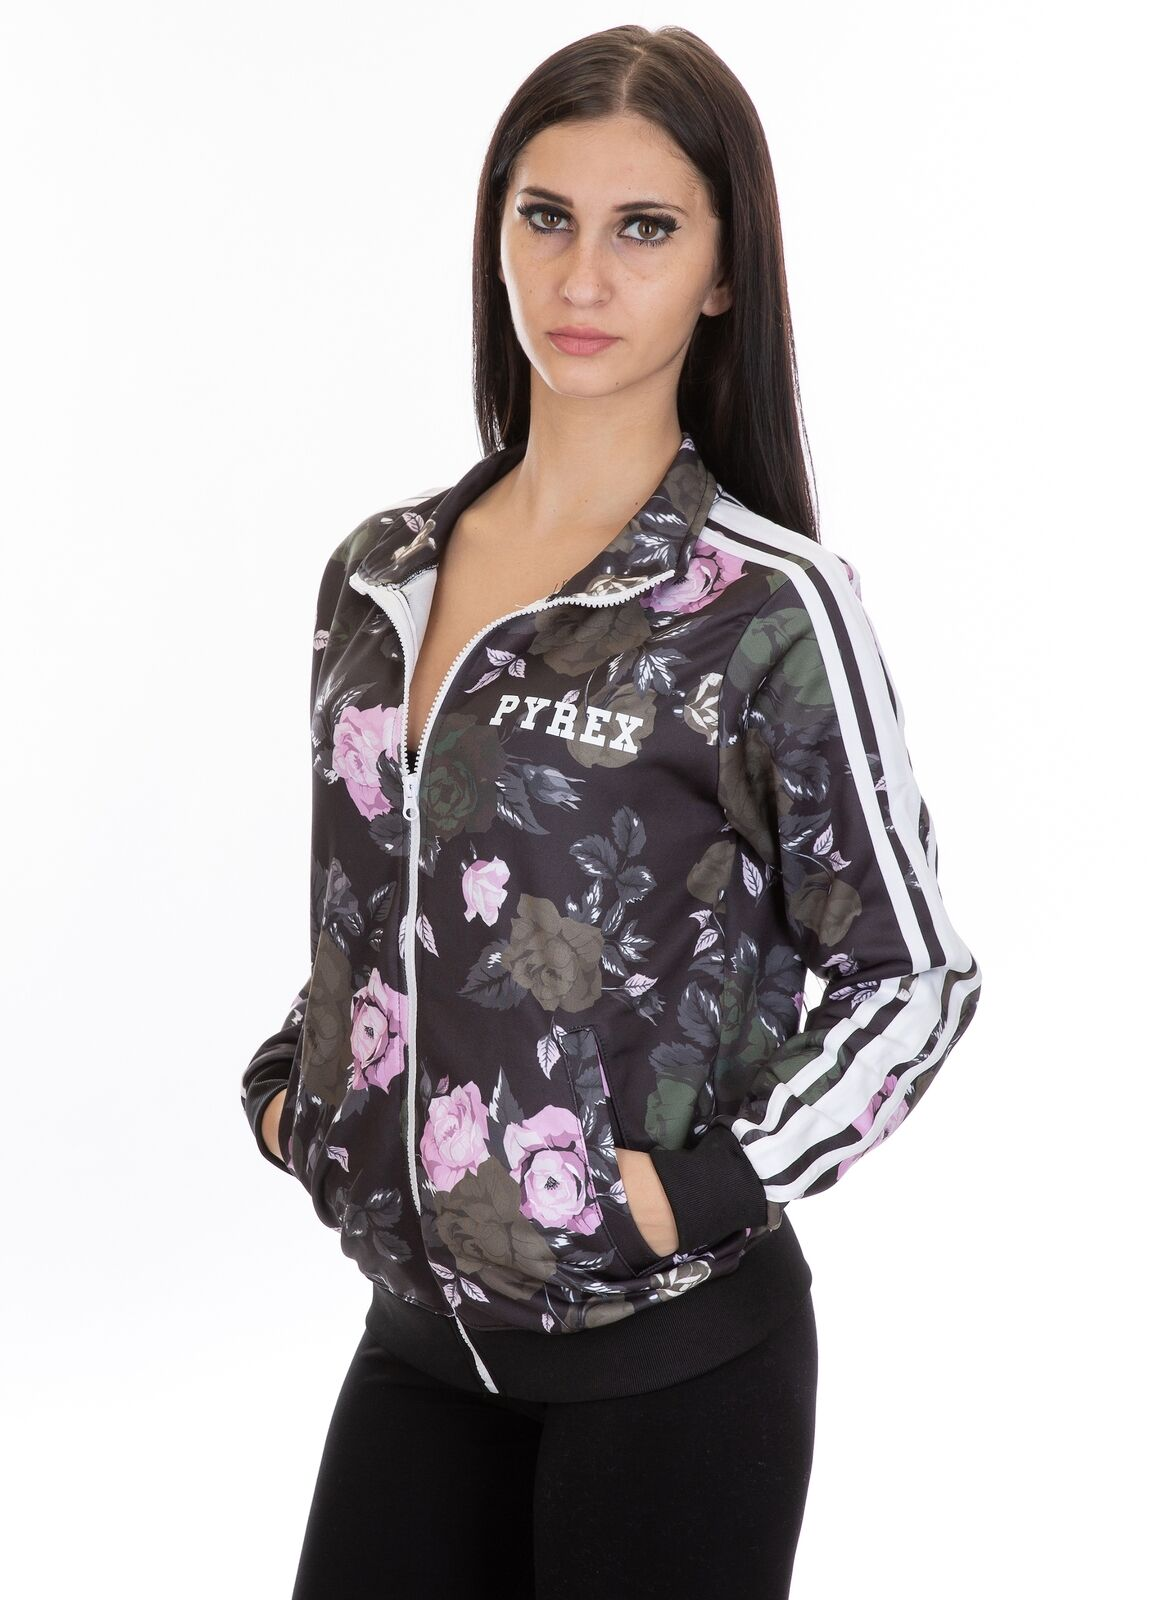 PYREX - GIACCA GIACCA GIACCA DONNA FULL ZIP - 18IPC34486 - FLOWER aefea0